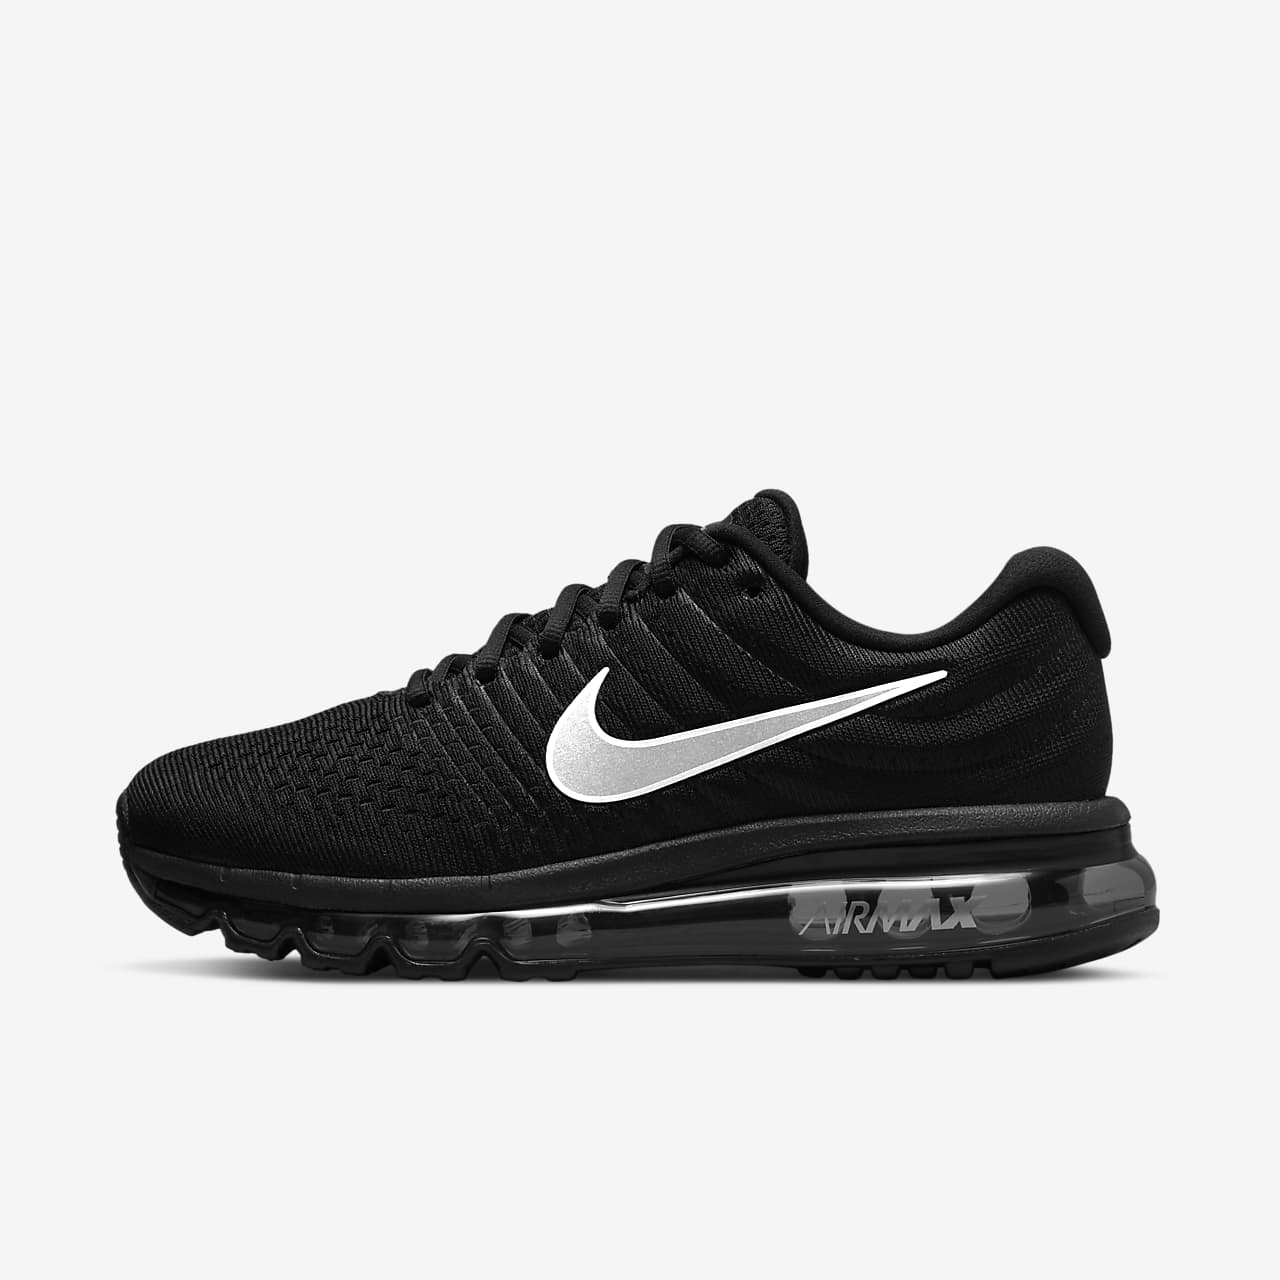 679ac1547 Nike Air Max 2017 Women s Shoe. Nike.com GB